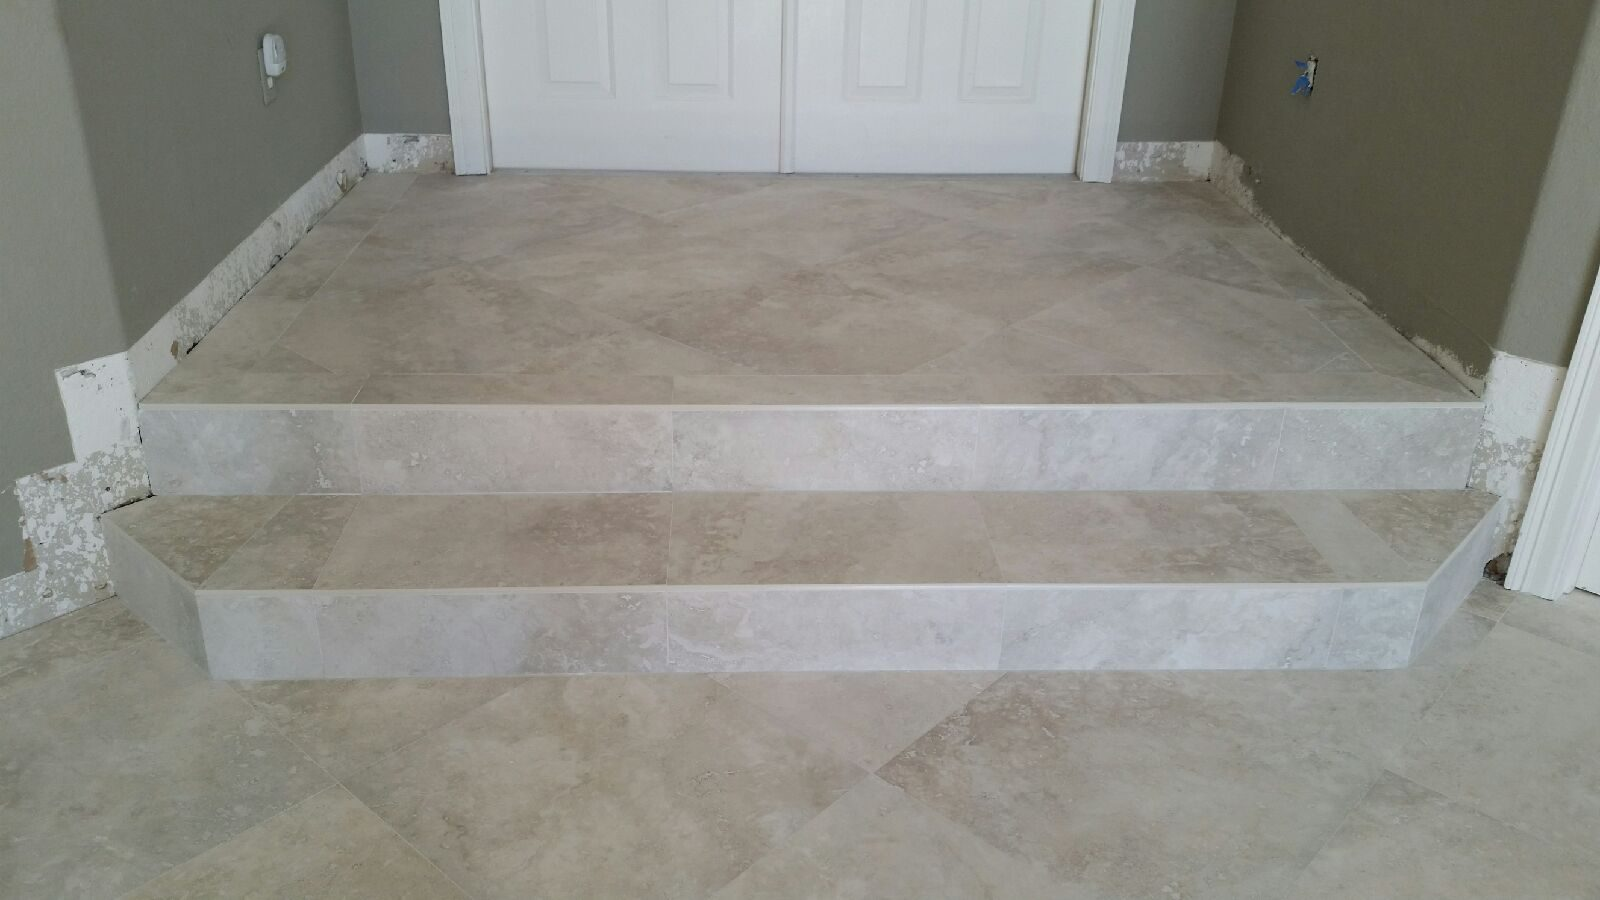 Tile stairs in multilevel home in Fort Lauderdale, FL from Daniel Flooring